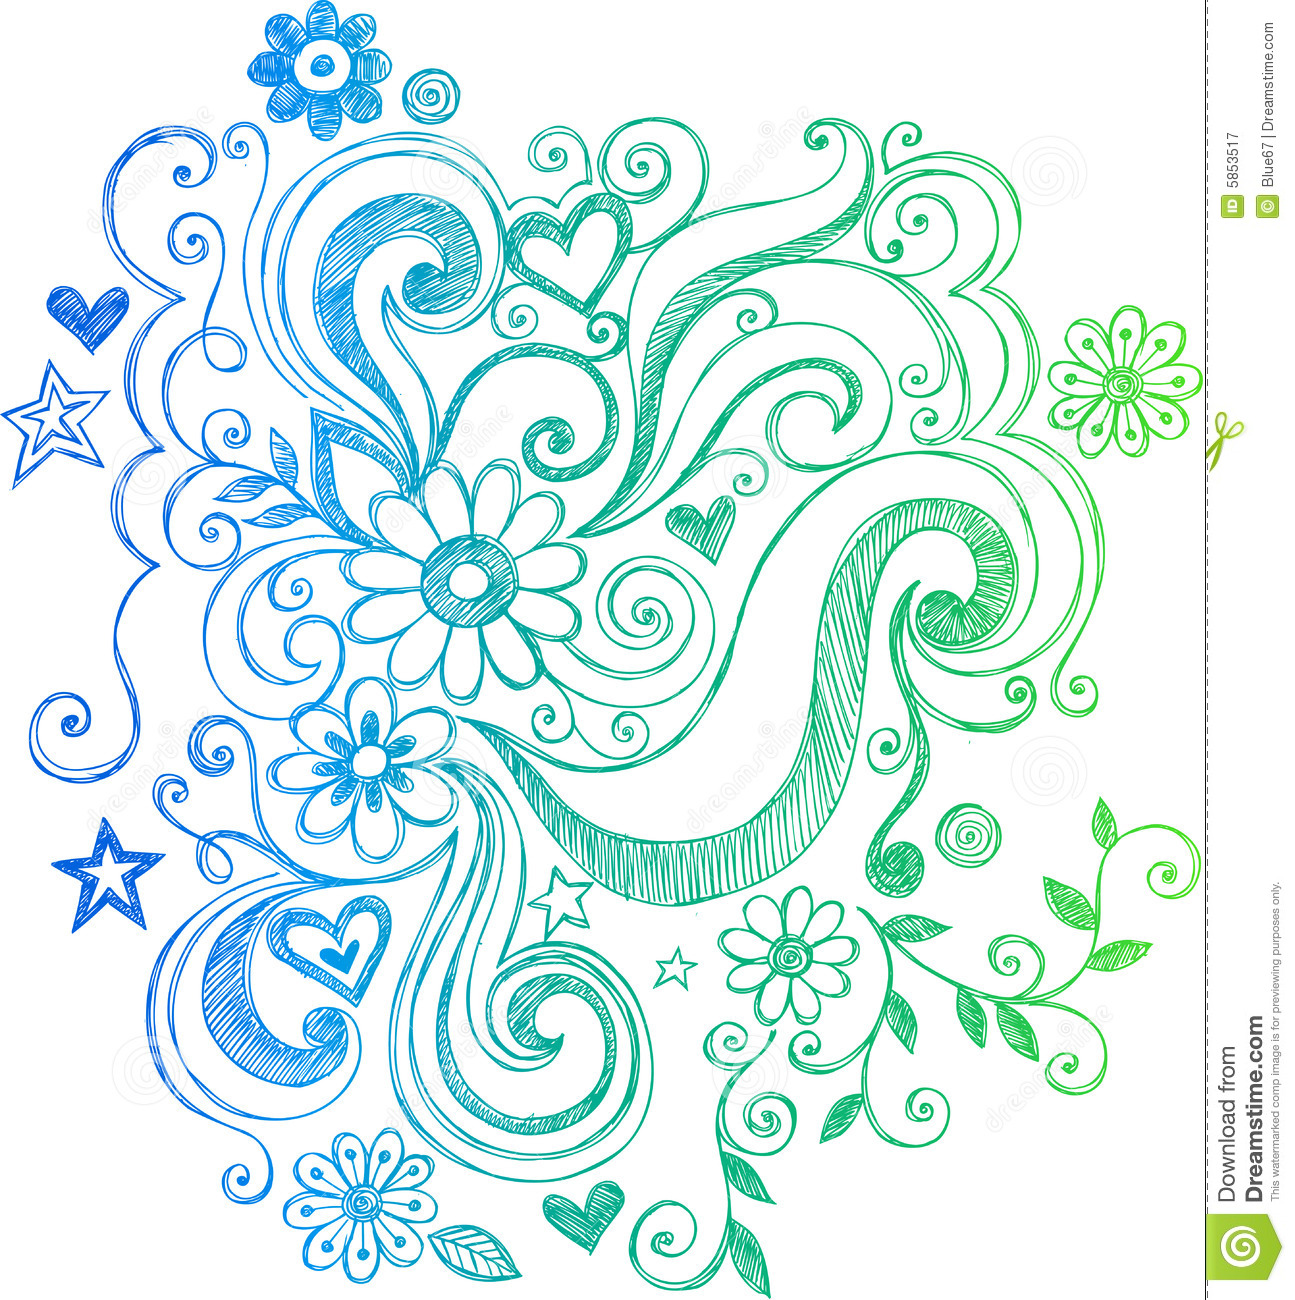 Download image Doodle Swirls And Flowers PC, Android, iPhone and iPad ...